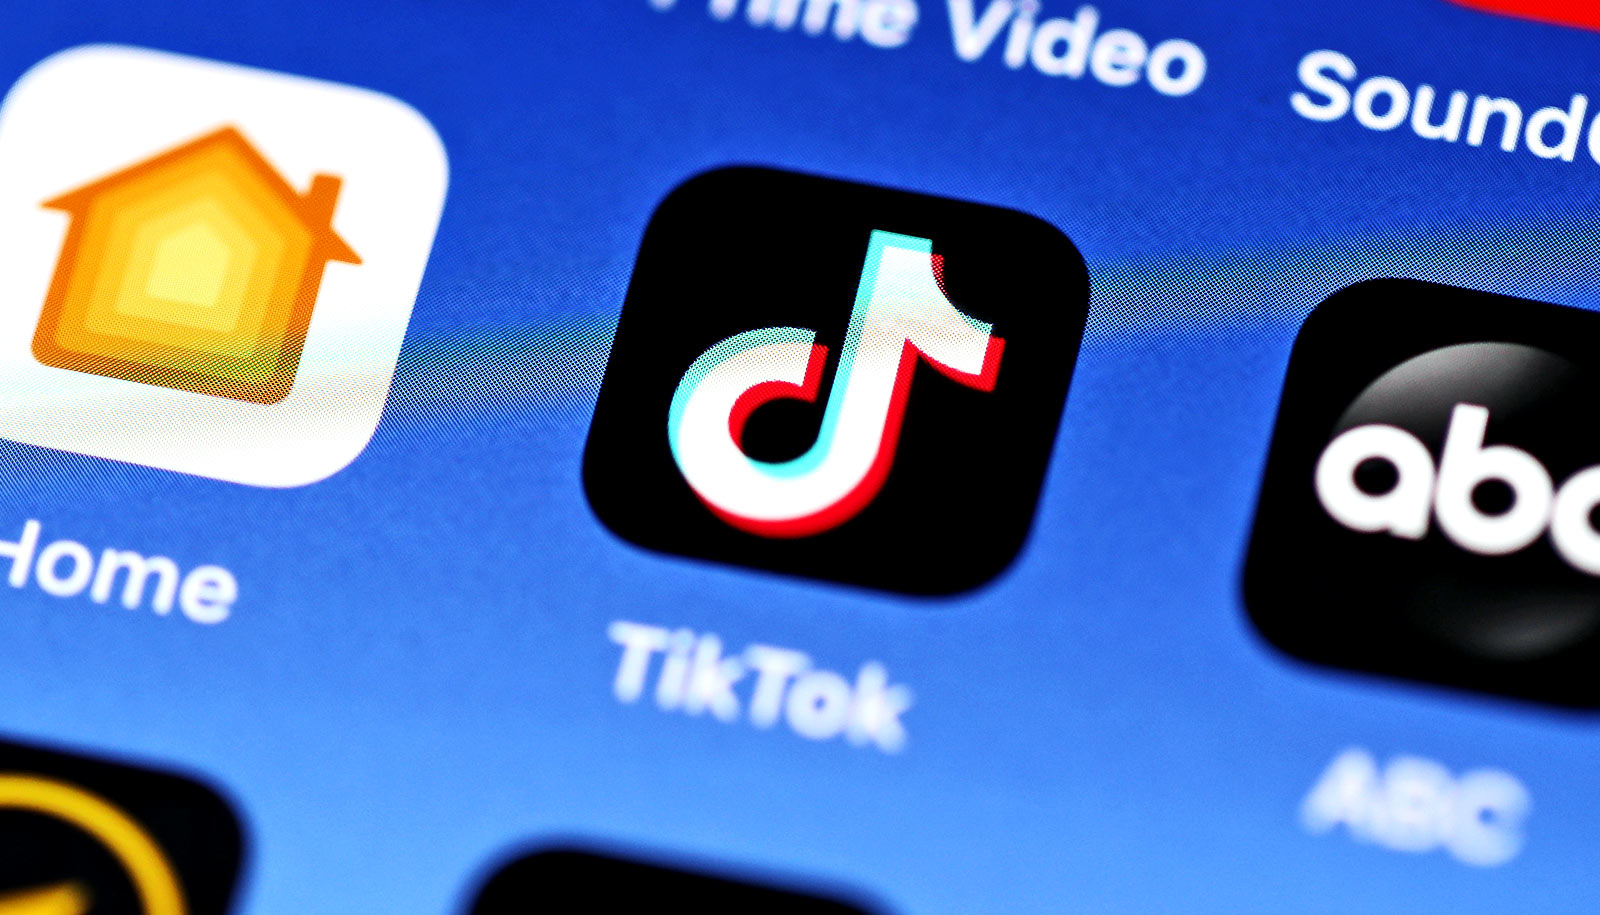 Can the US government really ban TikTok? - Futurity